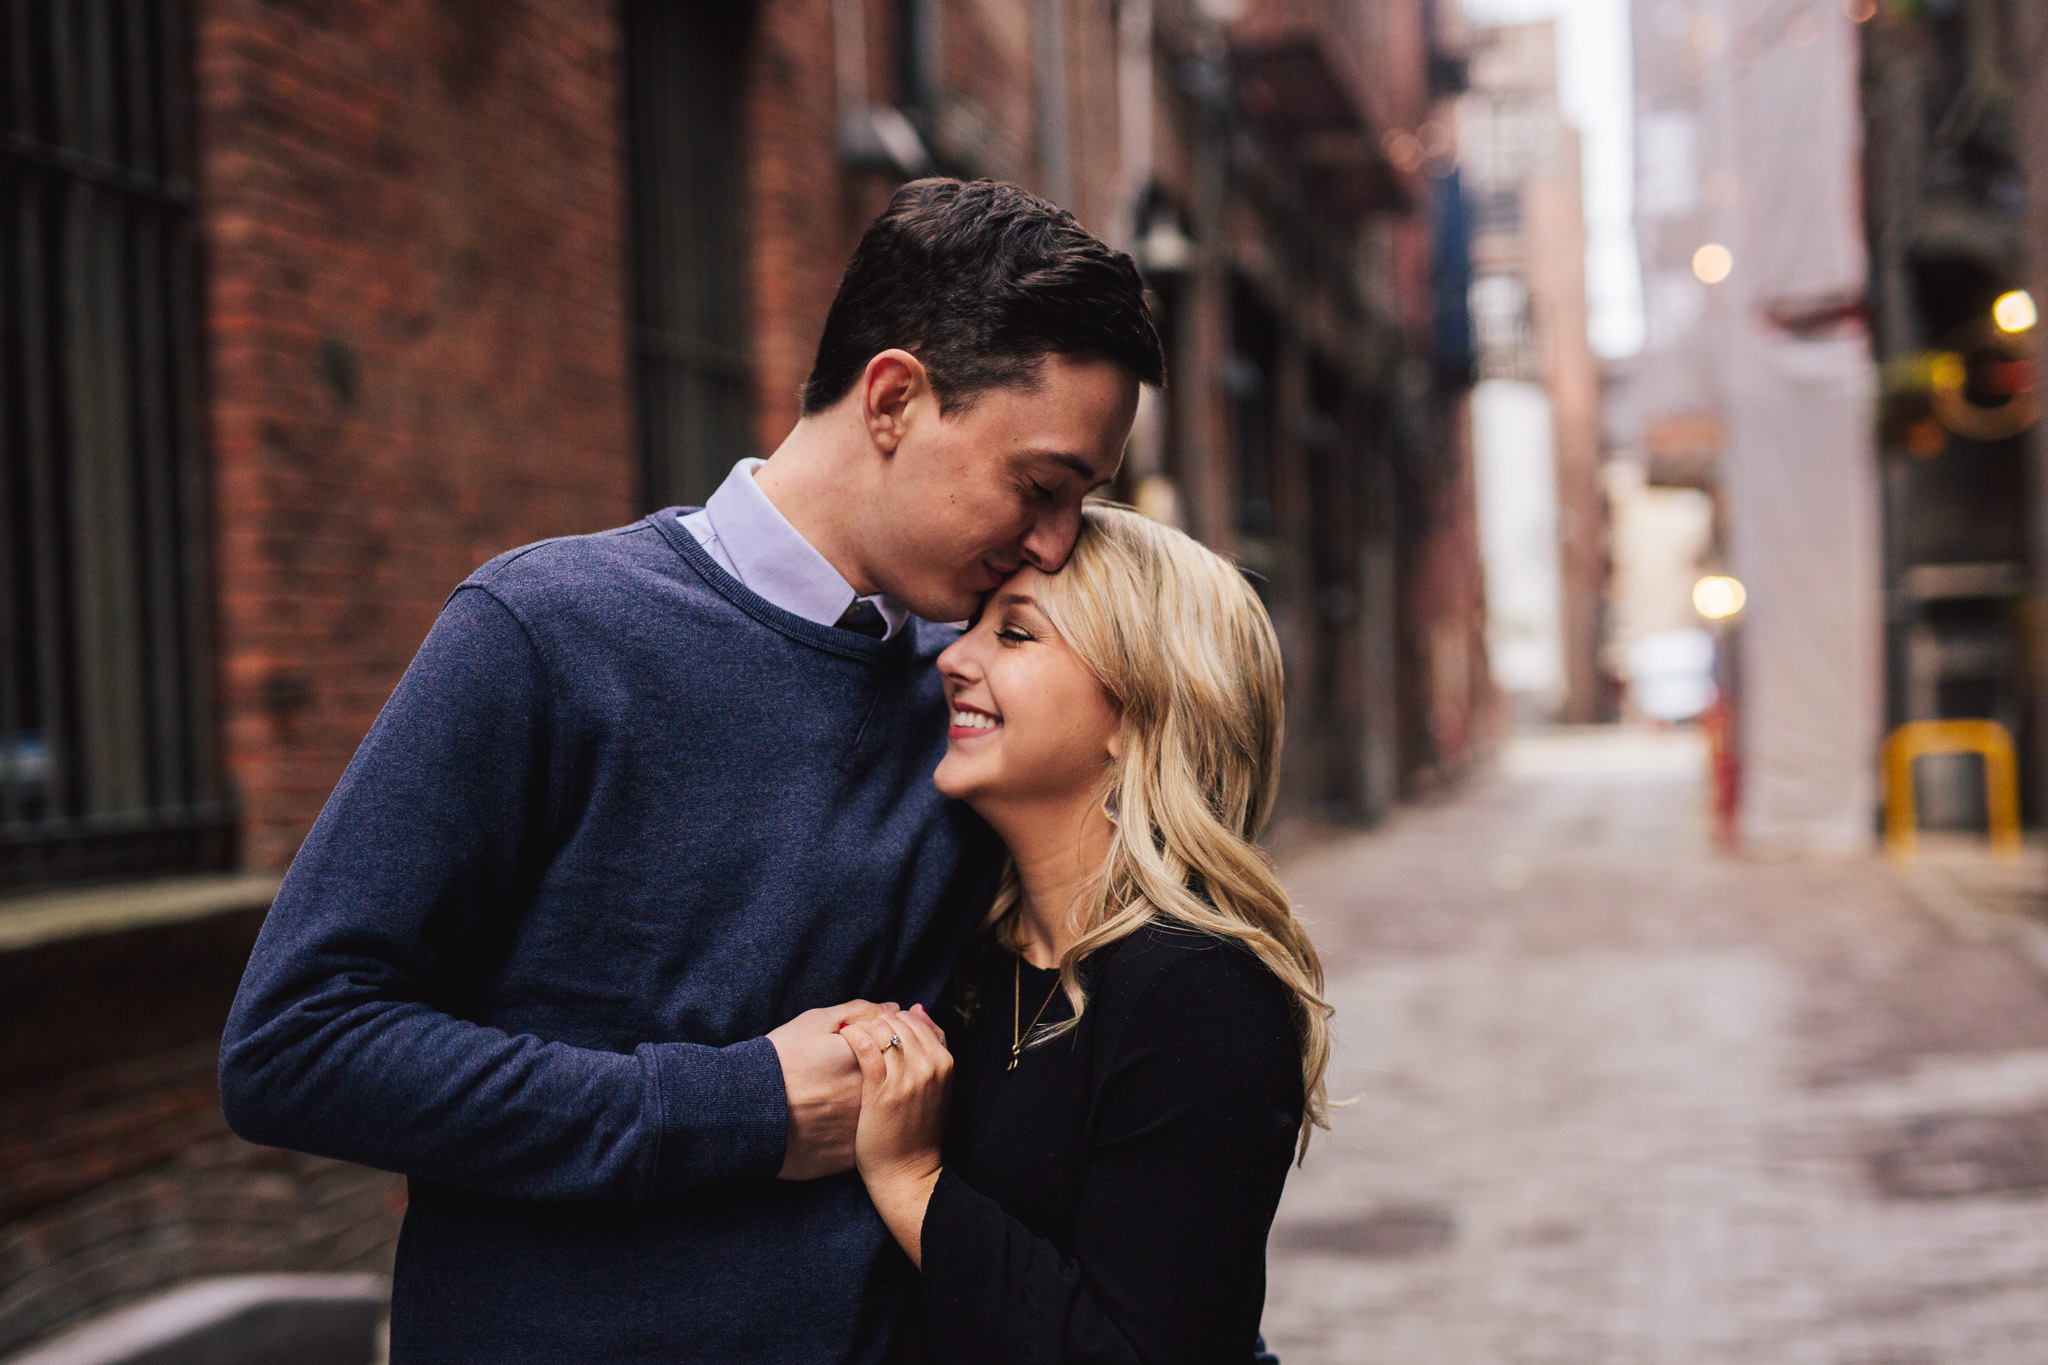 Seattle Pioneer Square Cozy Engagement Photos (10 of 14).jpg